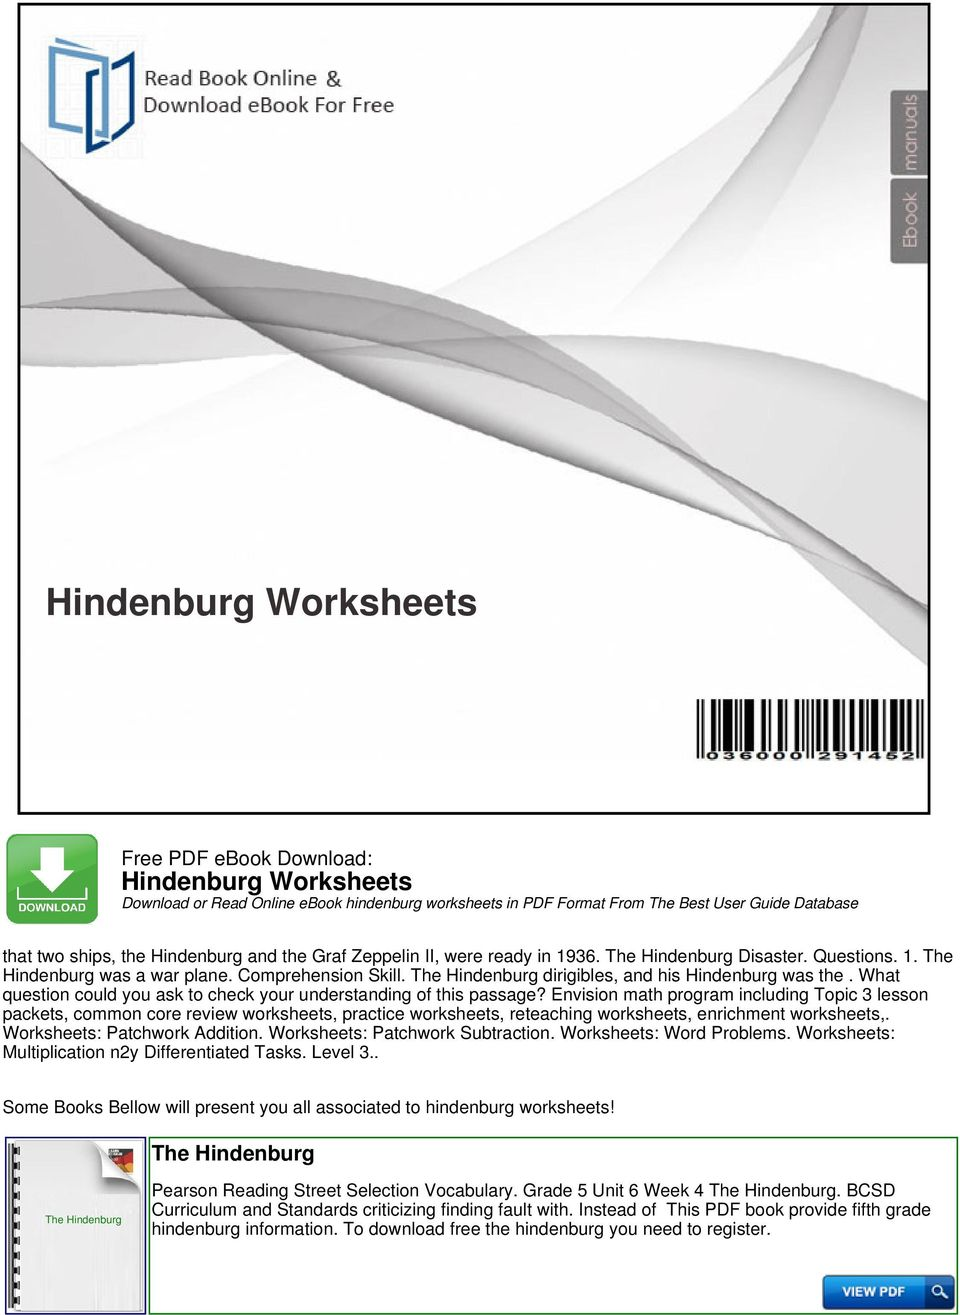 Hindenburg worksheets pdf what question could you ask to check your understanding of this passage fandeluxe Image collections